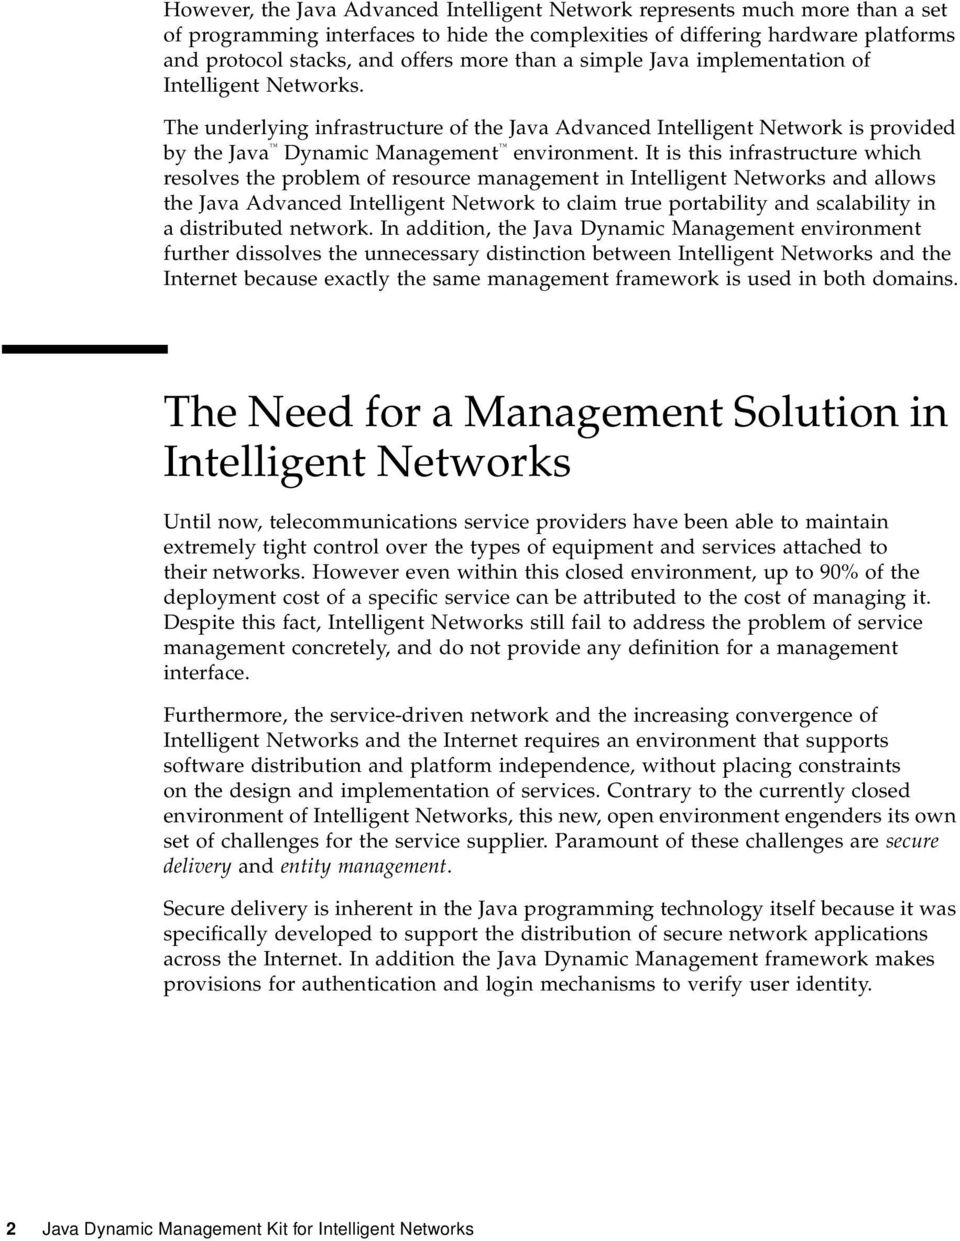 It is this infrastructure which resolves the problem of resource management in Intelligent Networks and allows the Java Advanced Intelligent Network to claim true portability and scalability in a